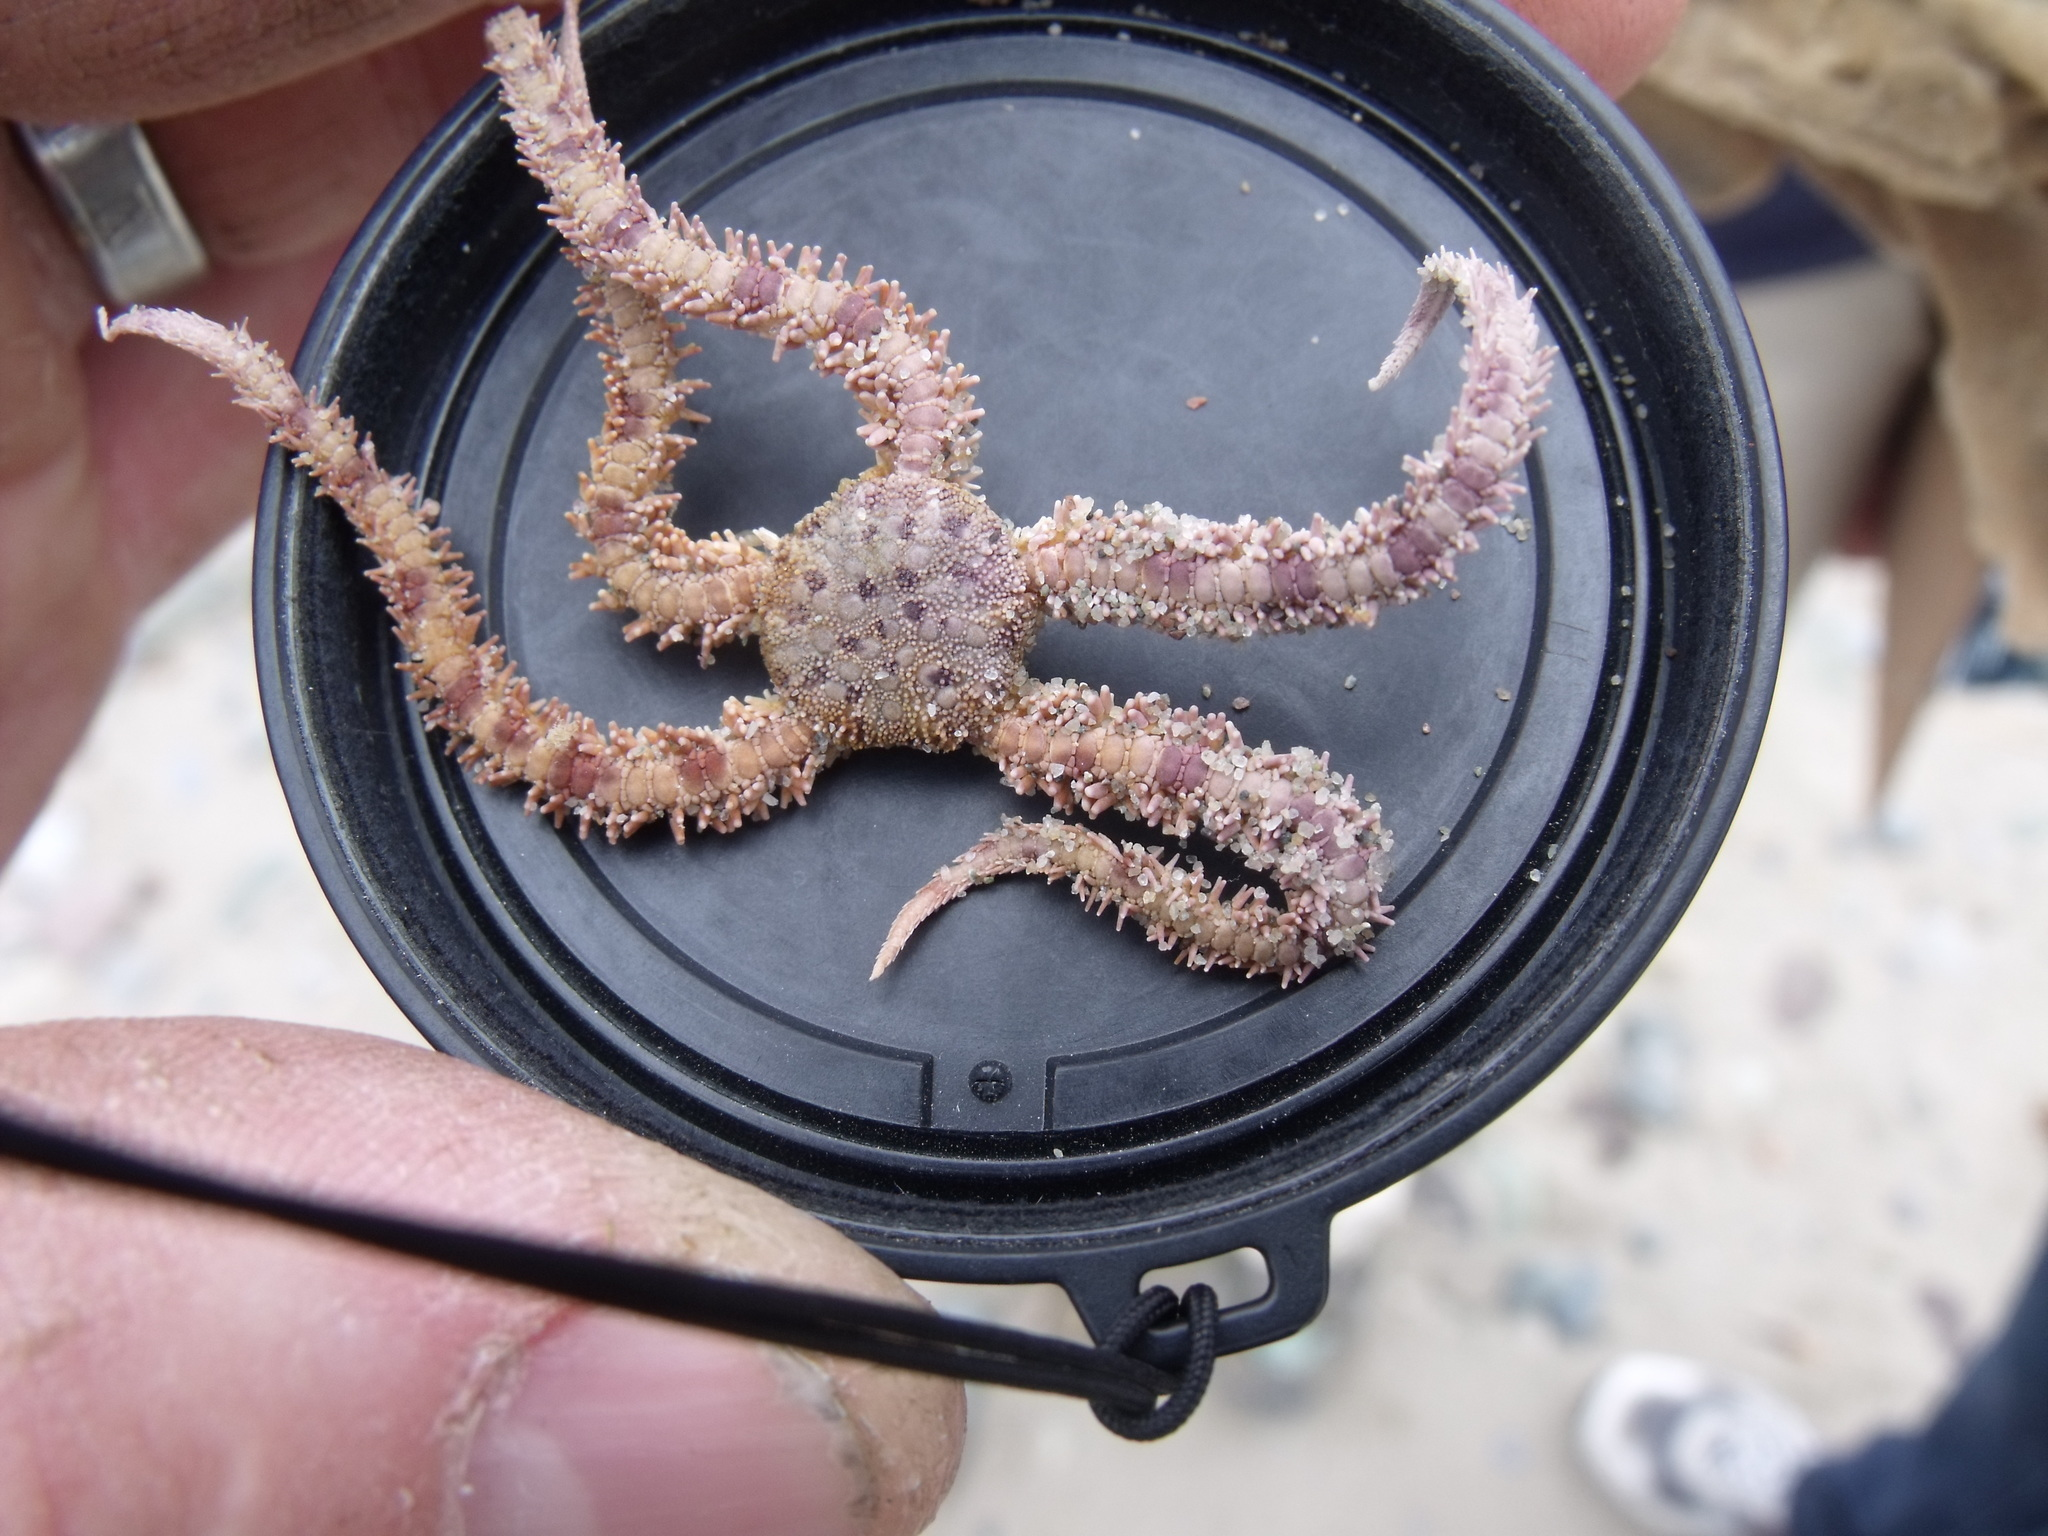 Image of Daisy brittle star